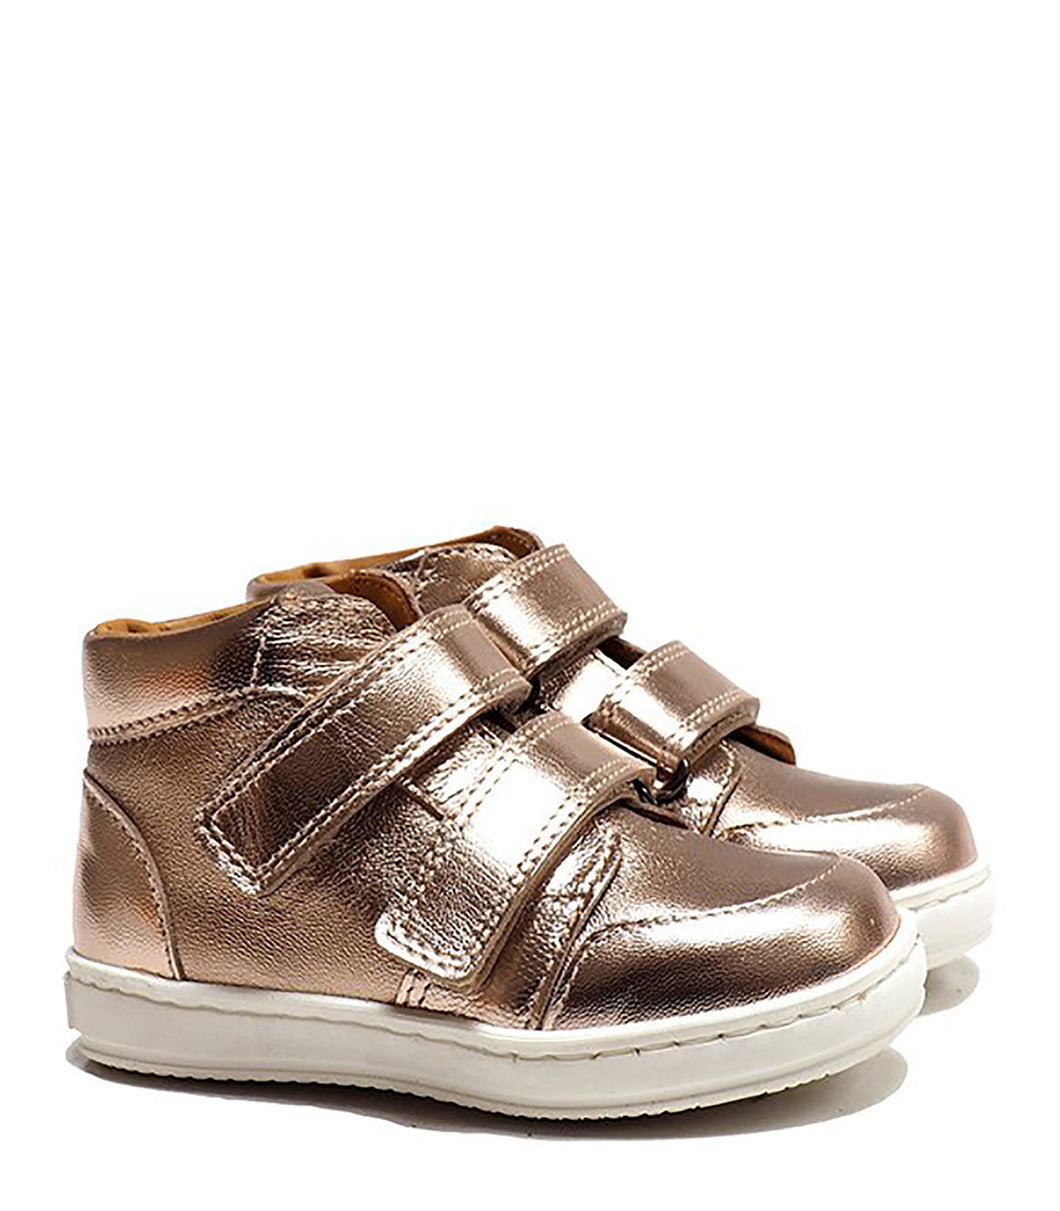 Double Strap Toddler High-Top Sneakers in Metallic Effect Pink Leather